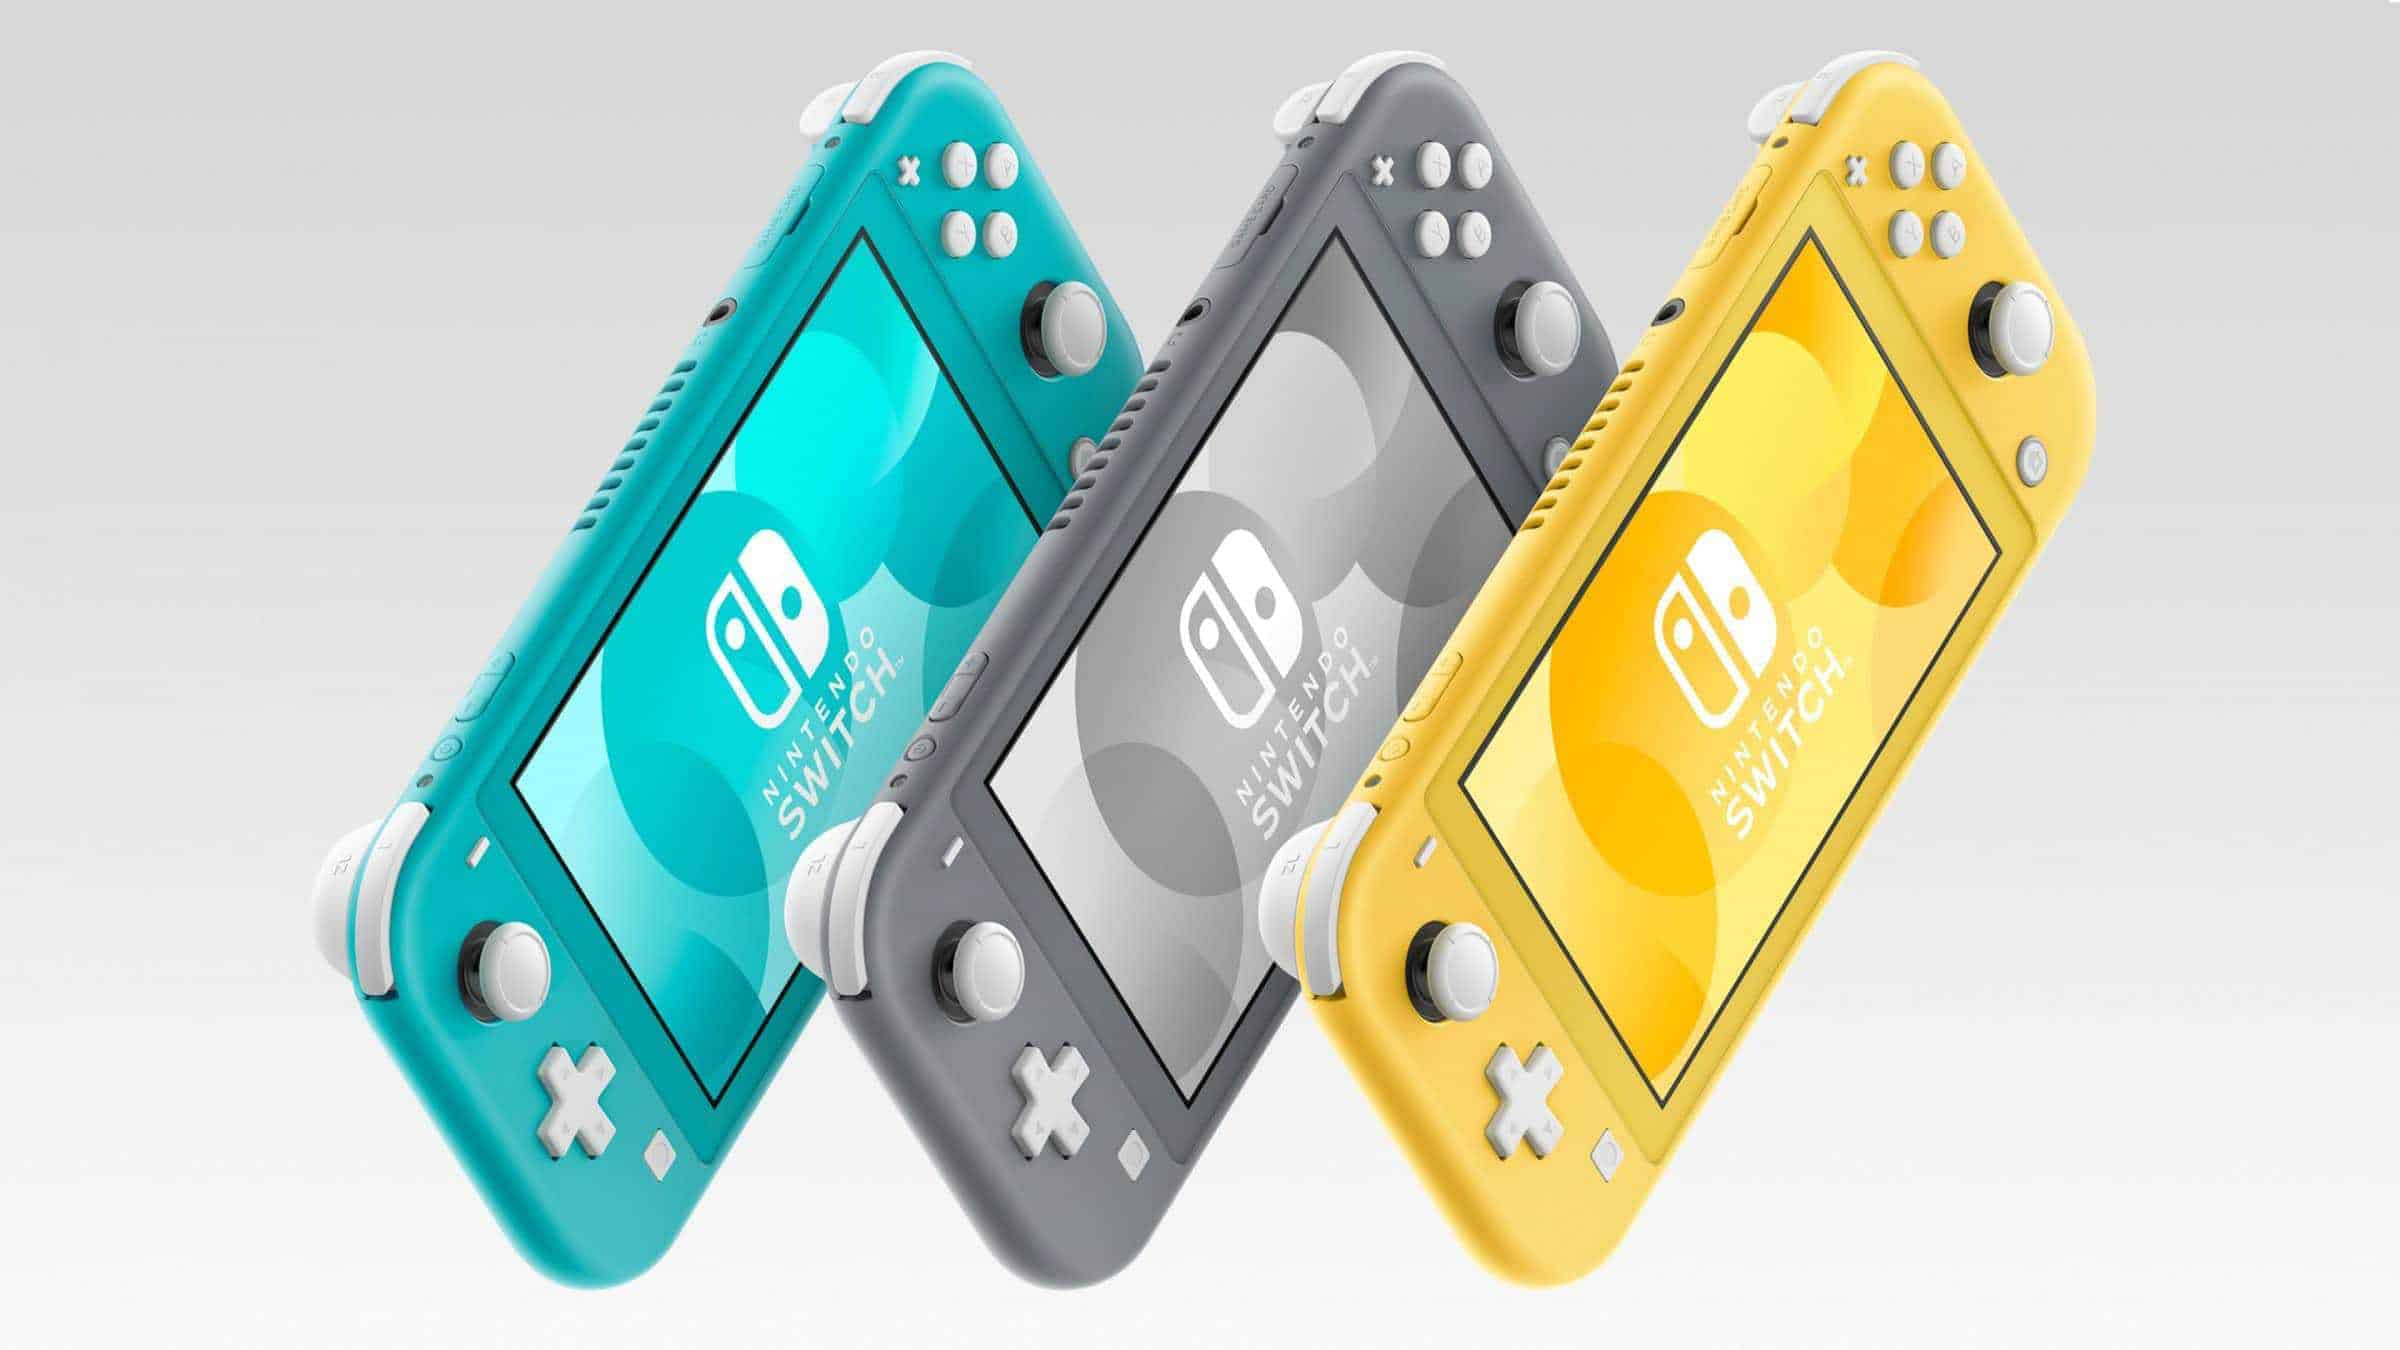 Die Nintendo Switch Lite kommt am 20. September 2019